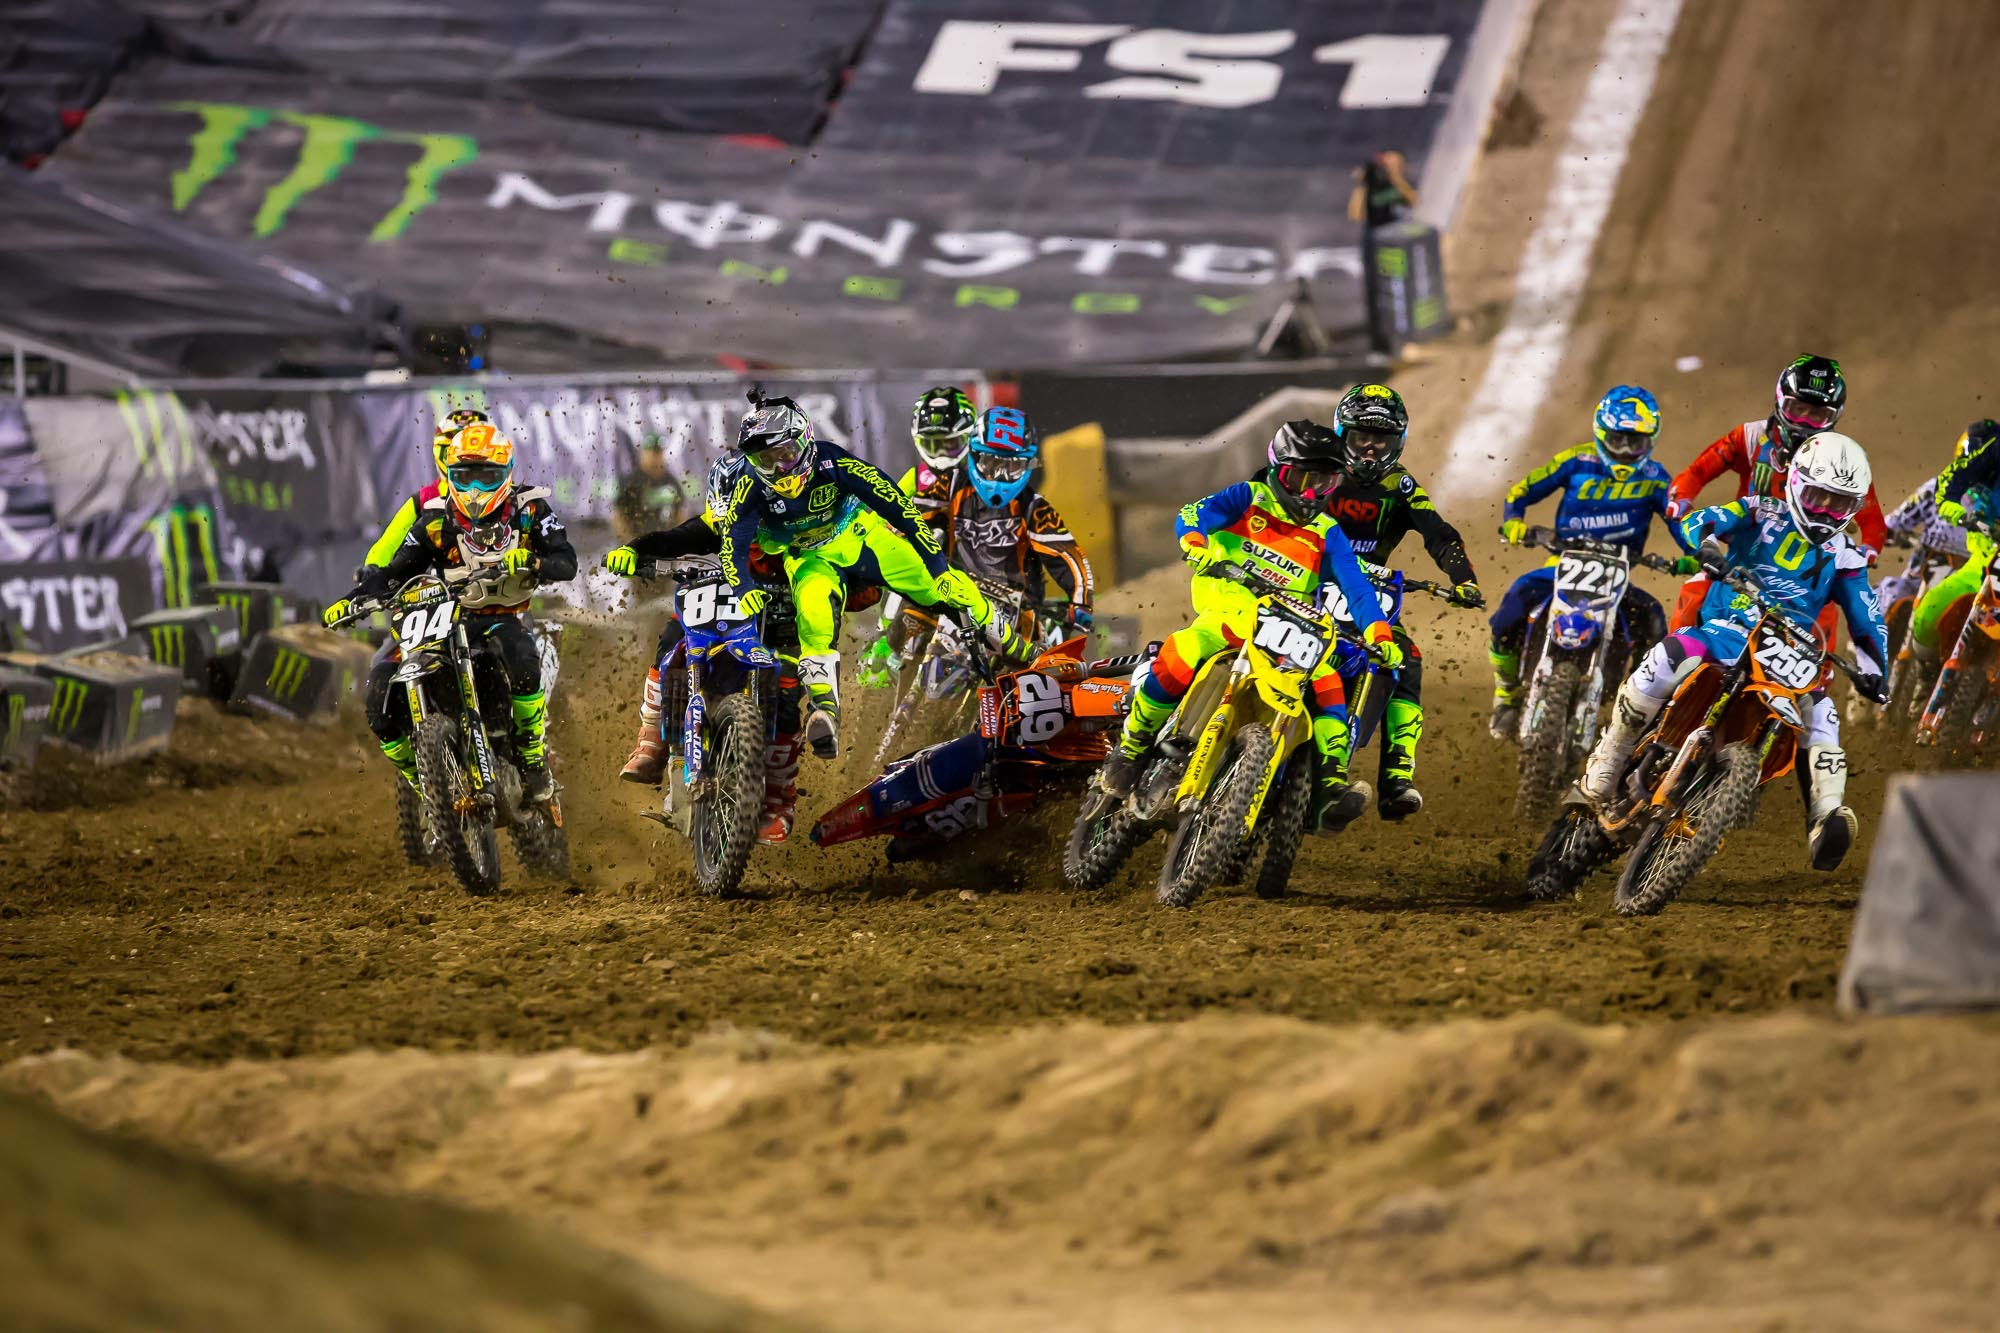 Falk ended up going 1-19 for eleventh overall.